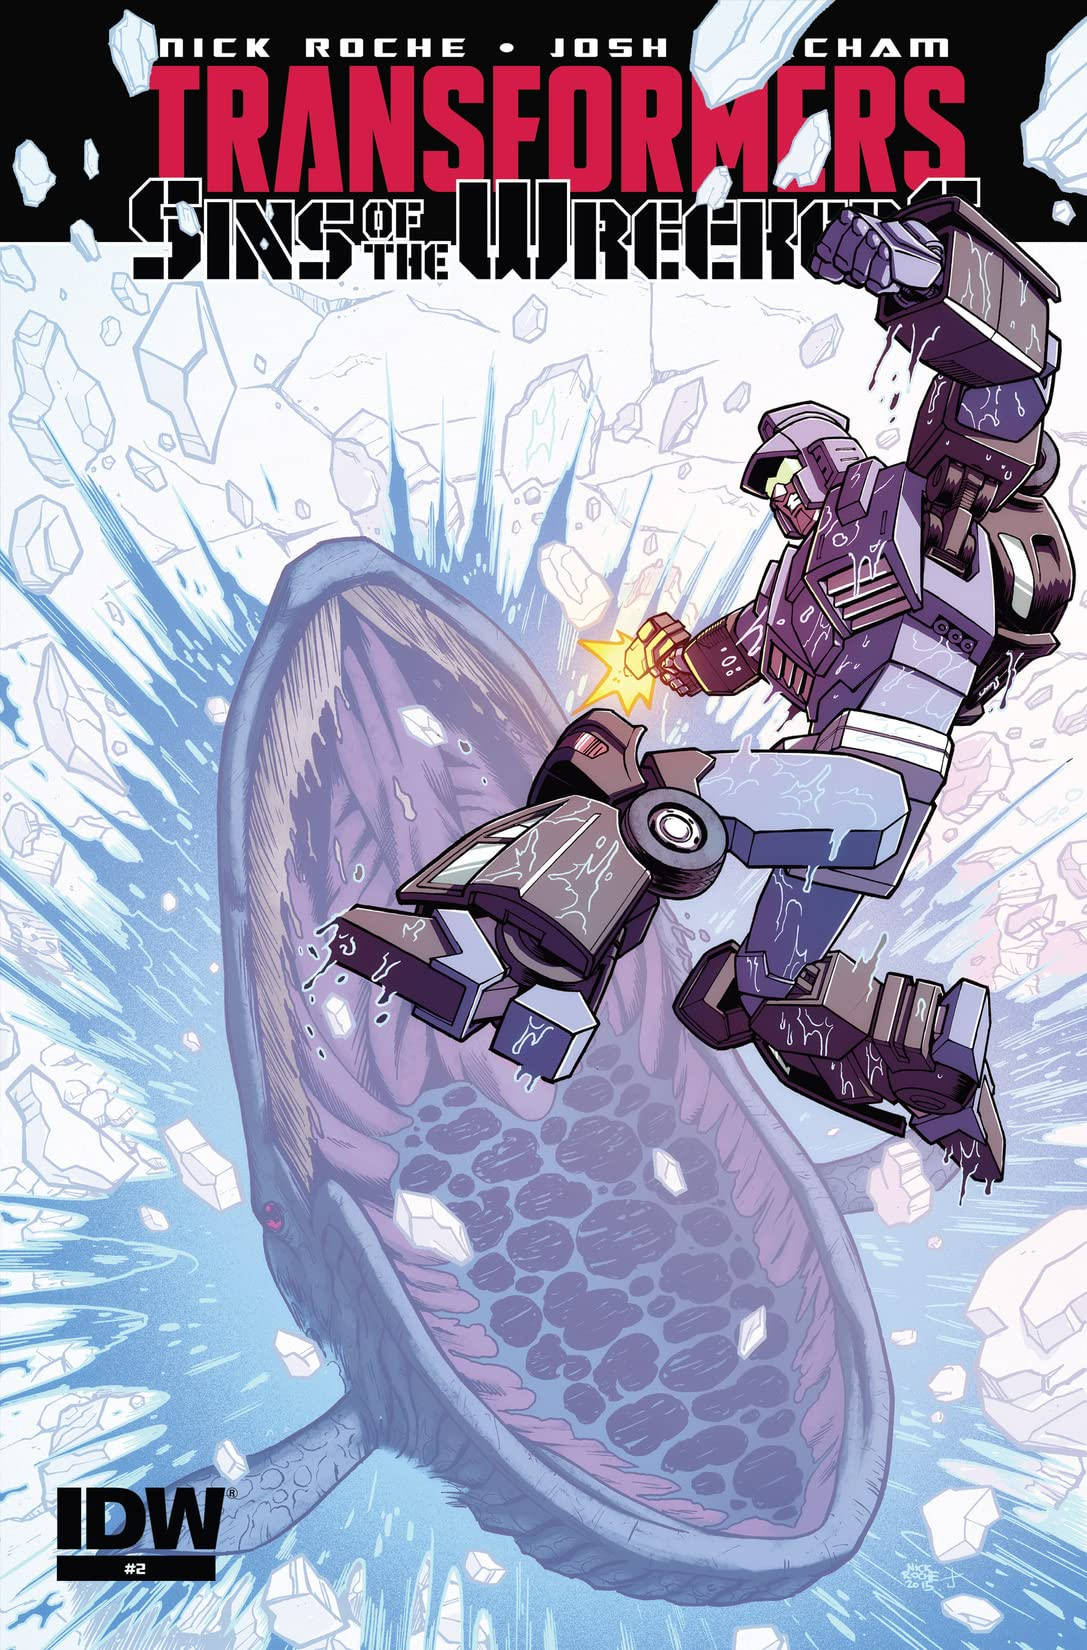 of 5 NEW!!! Transformers Sins of Wreckers #2